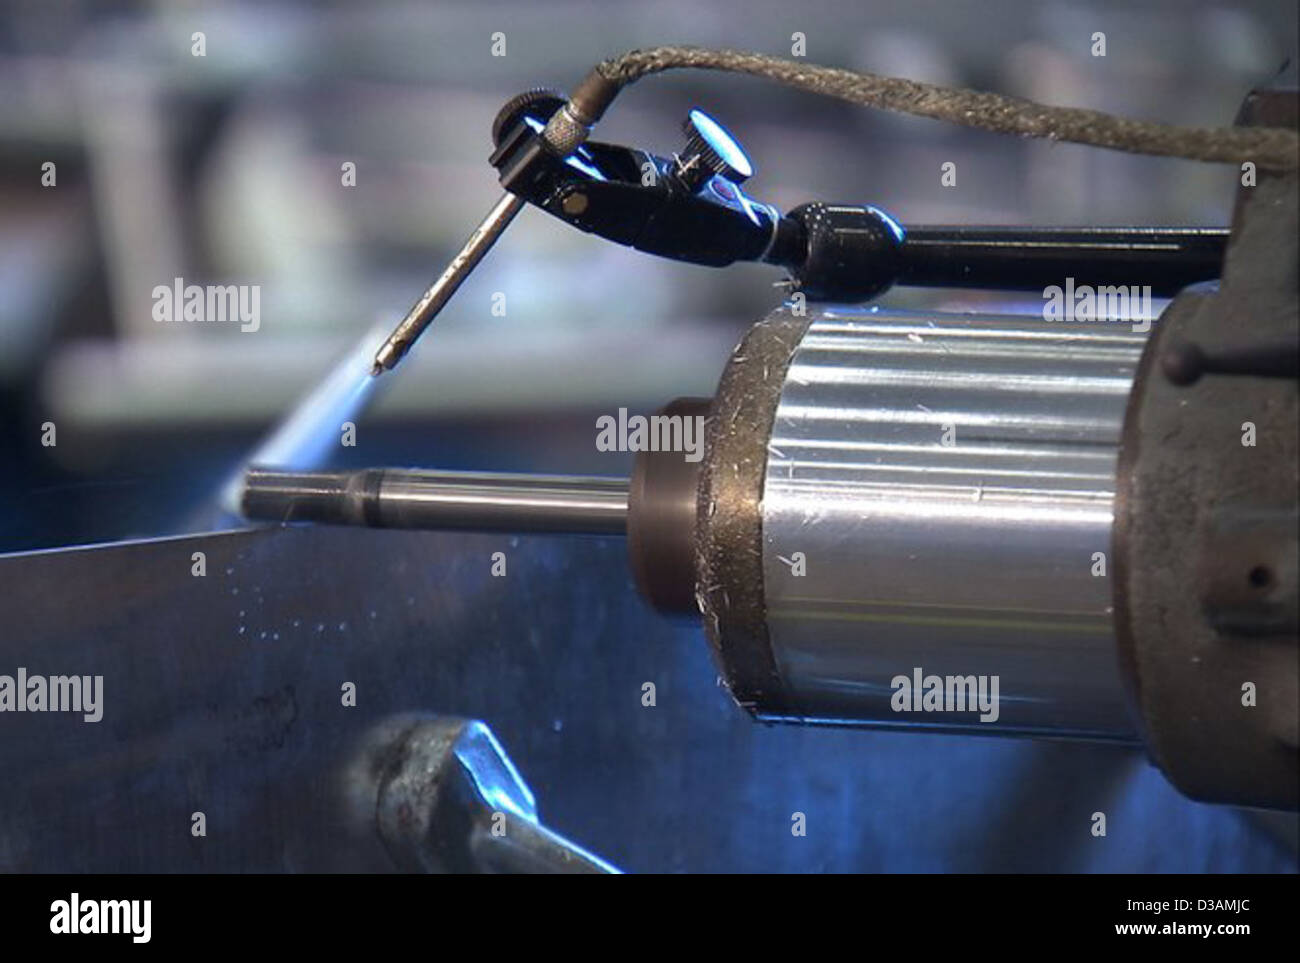 Friction Stir Welding and Ares Rockets (NASA, Ares, 1/30/09) - Stock Image